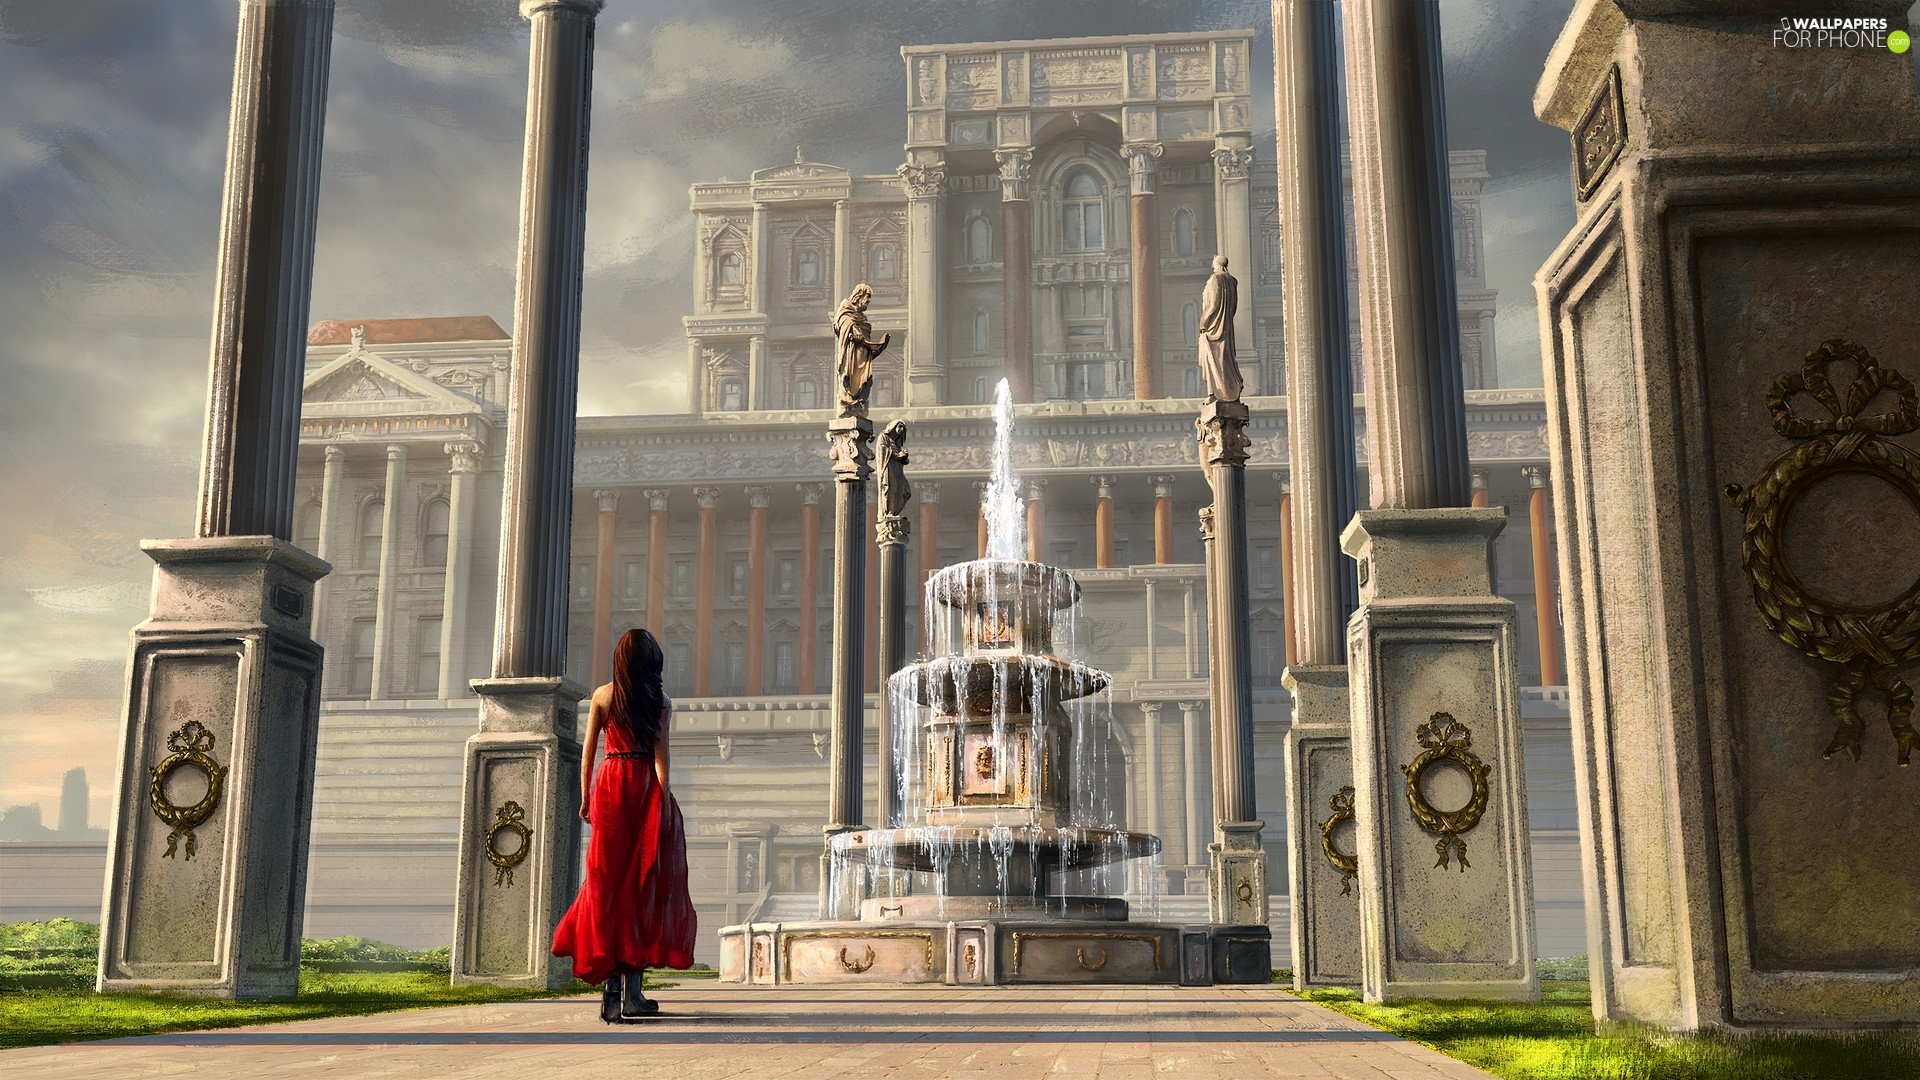 palace, column, dress, fountain, red hot, house, Digital Art, girl